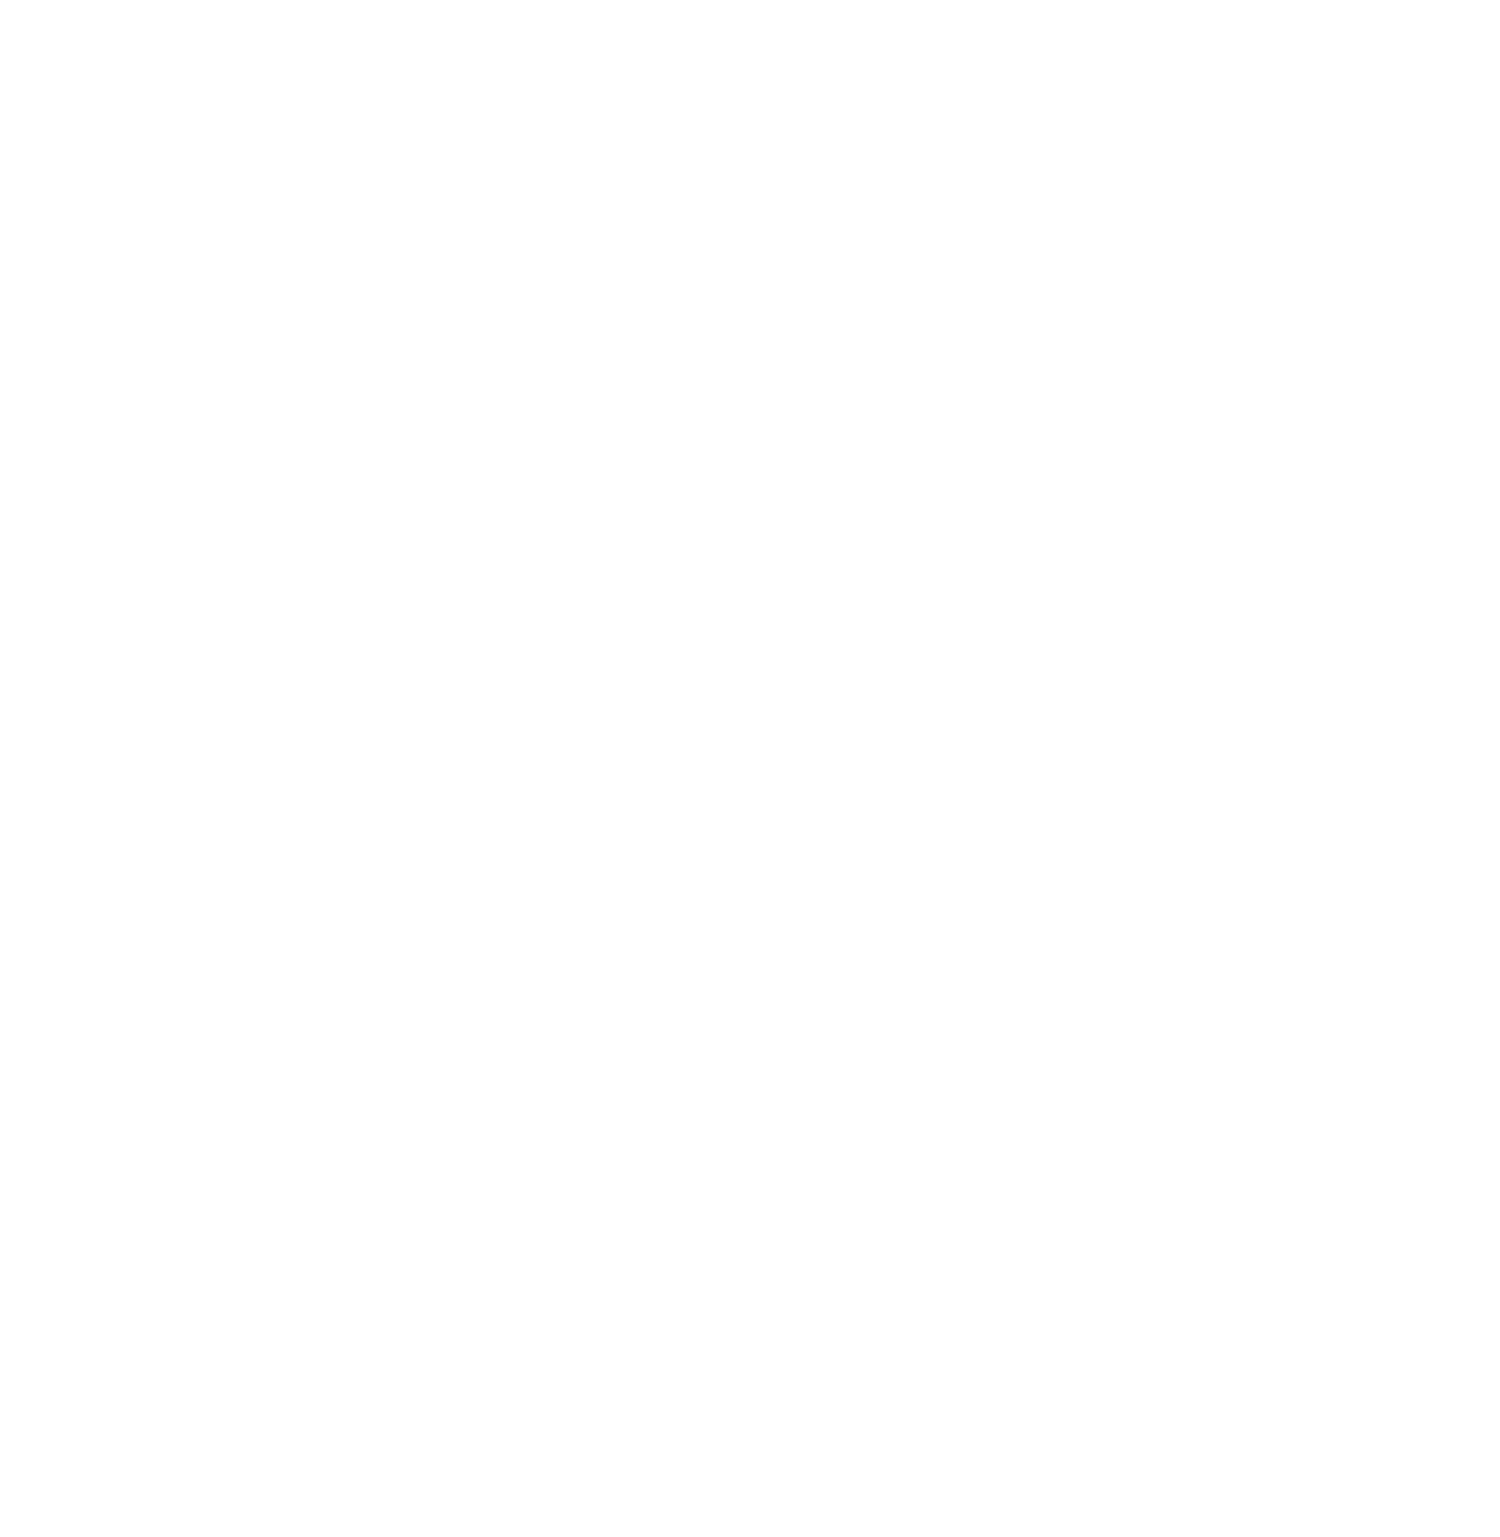 Ending hunger in Liverpool